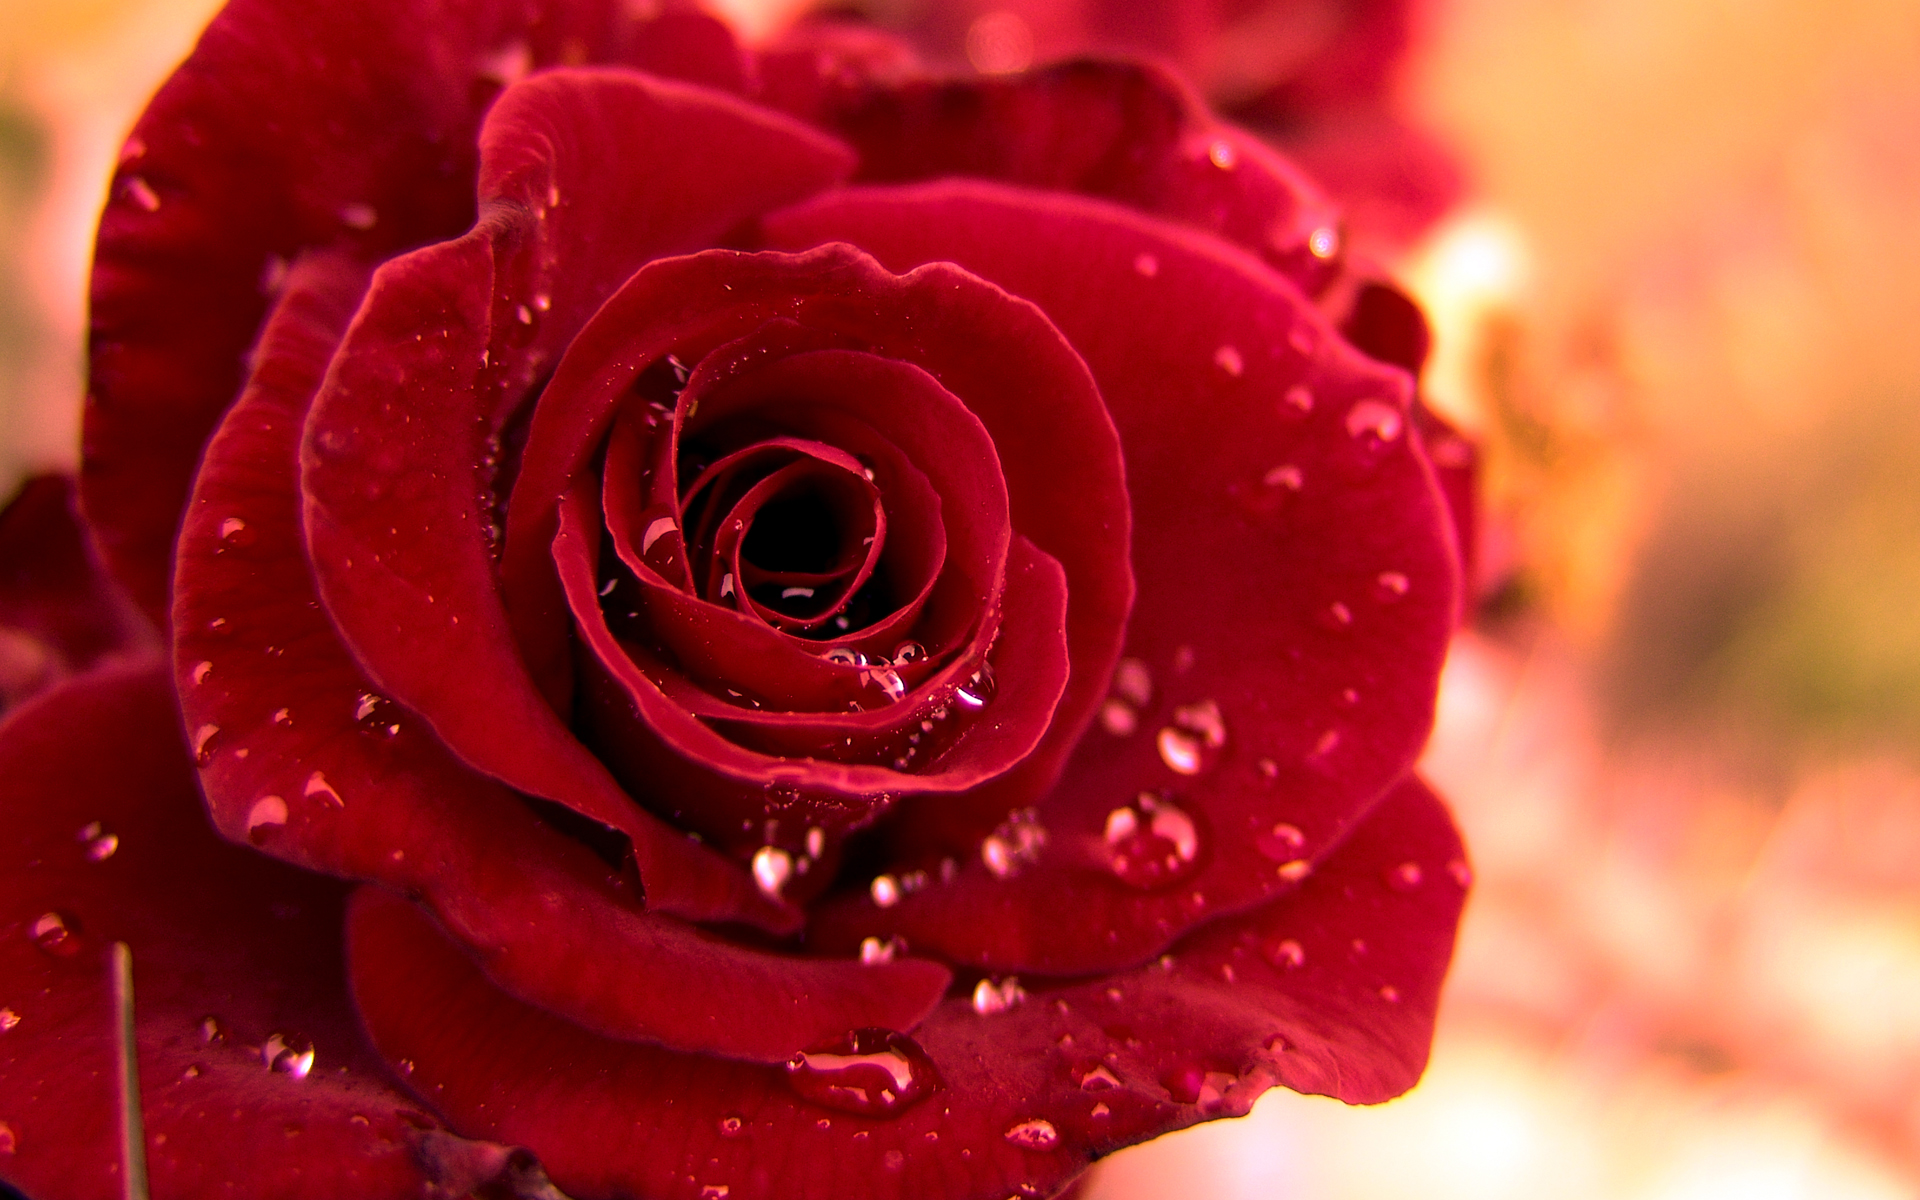 flowers images red roses hd wallpaper and background photos (34611286)